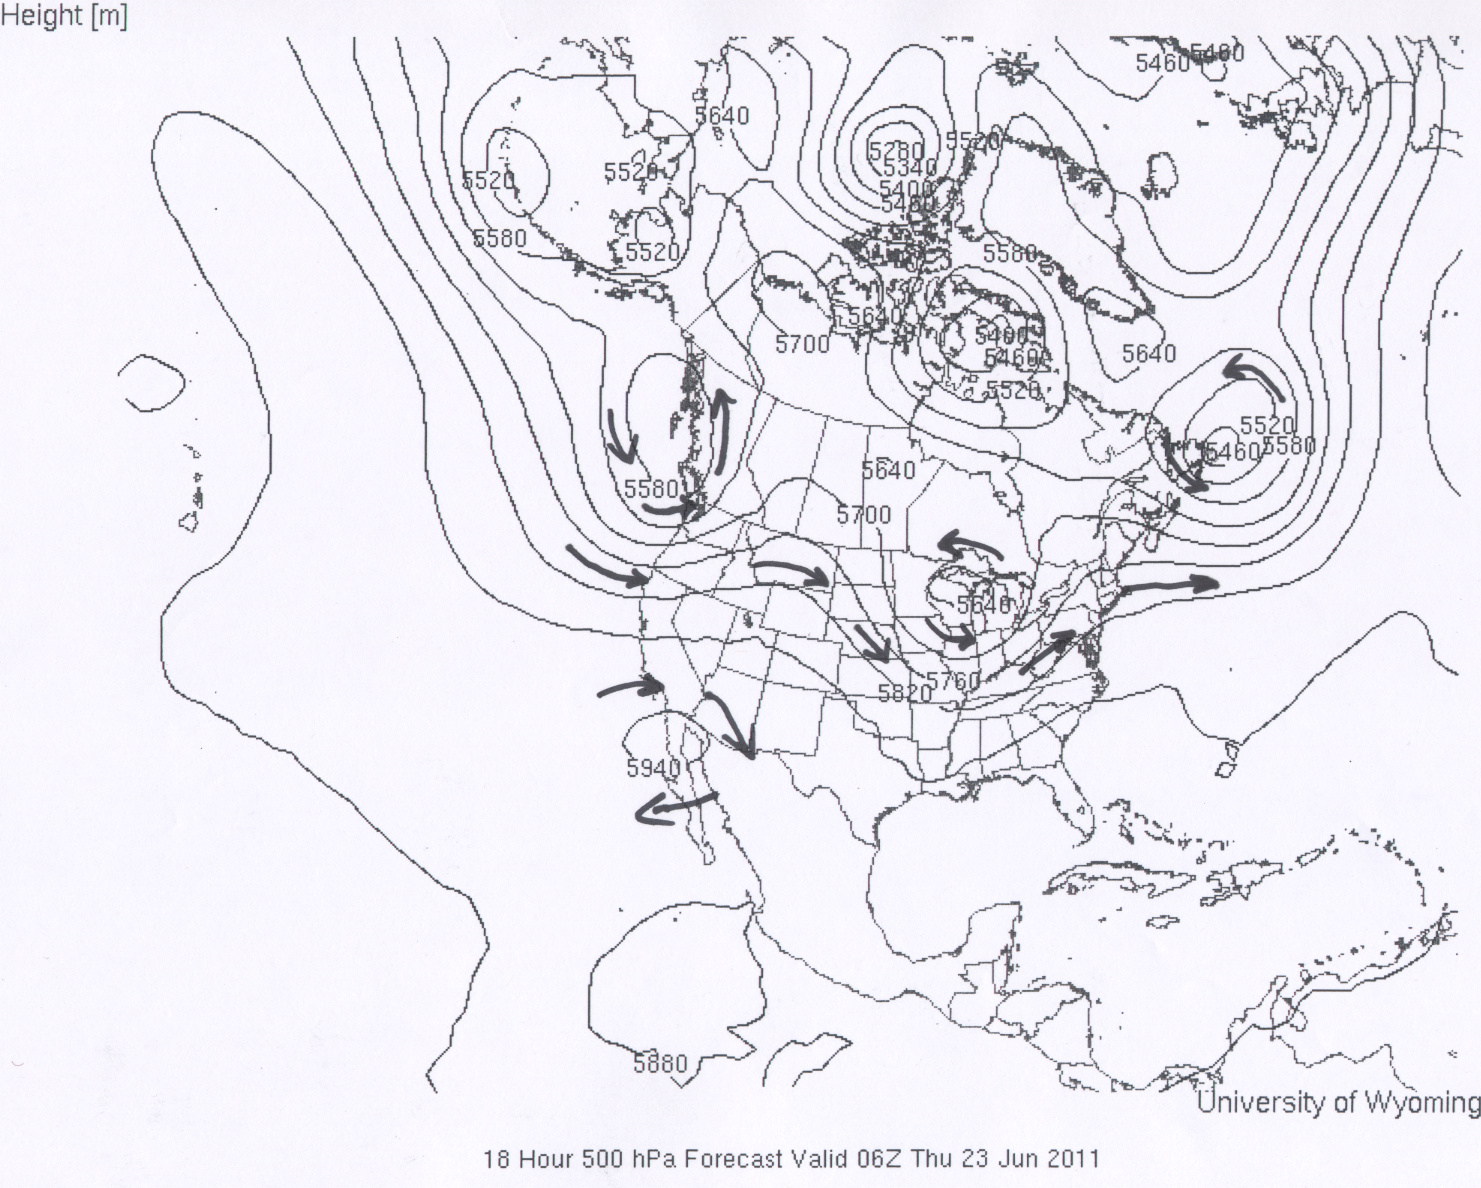 ATMO Fall - Us weather map with high and low pressure